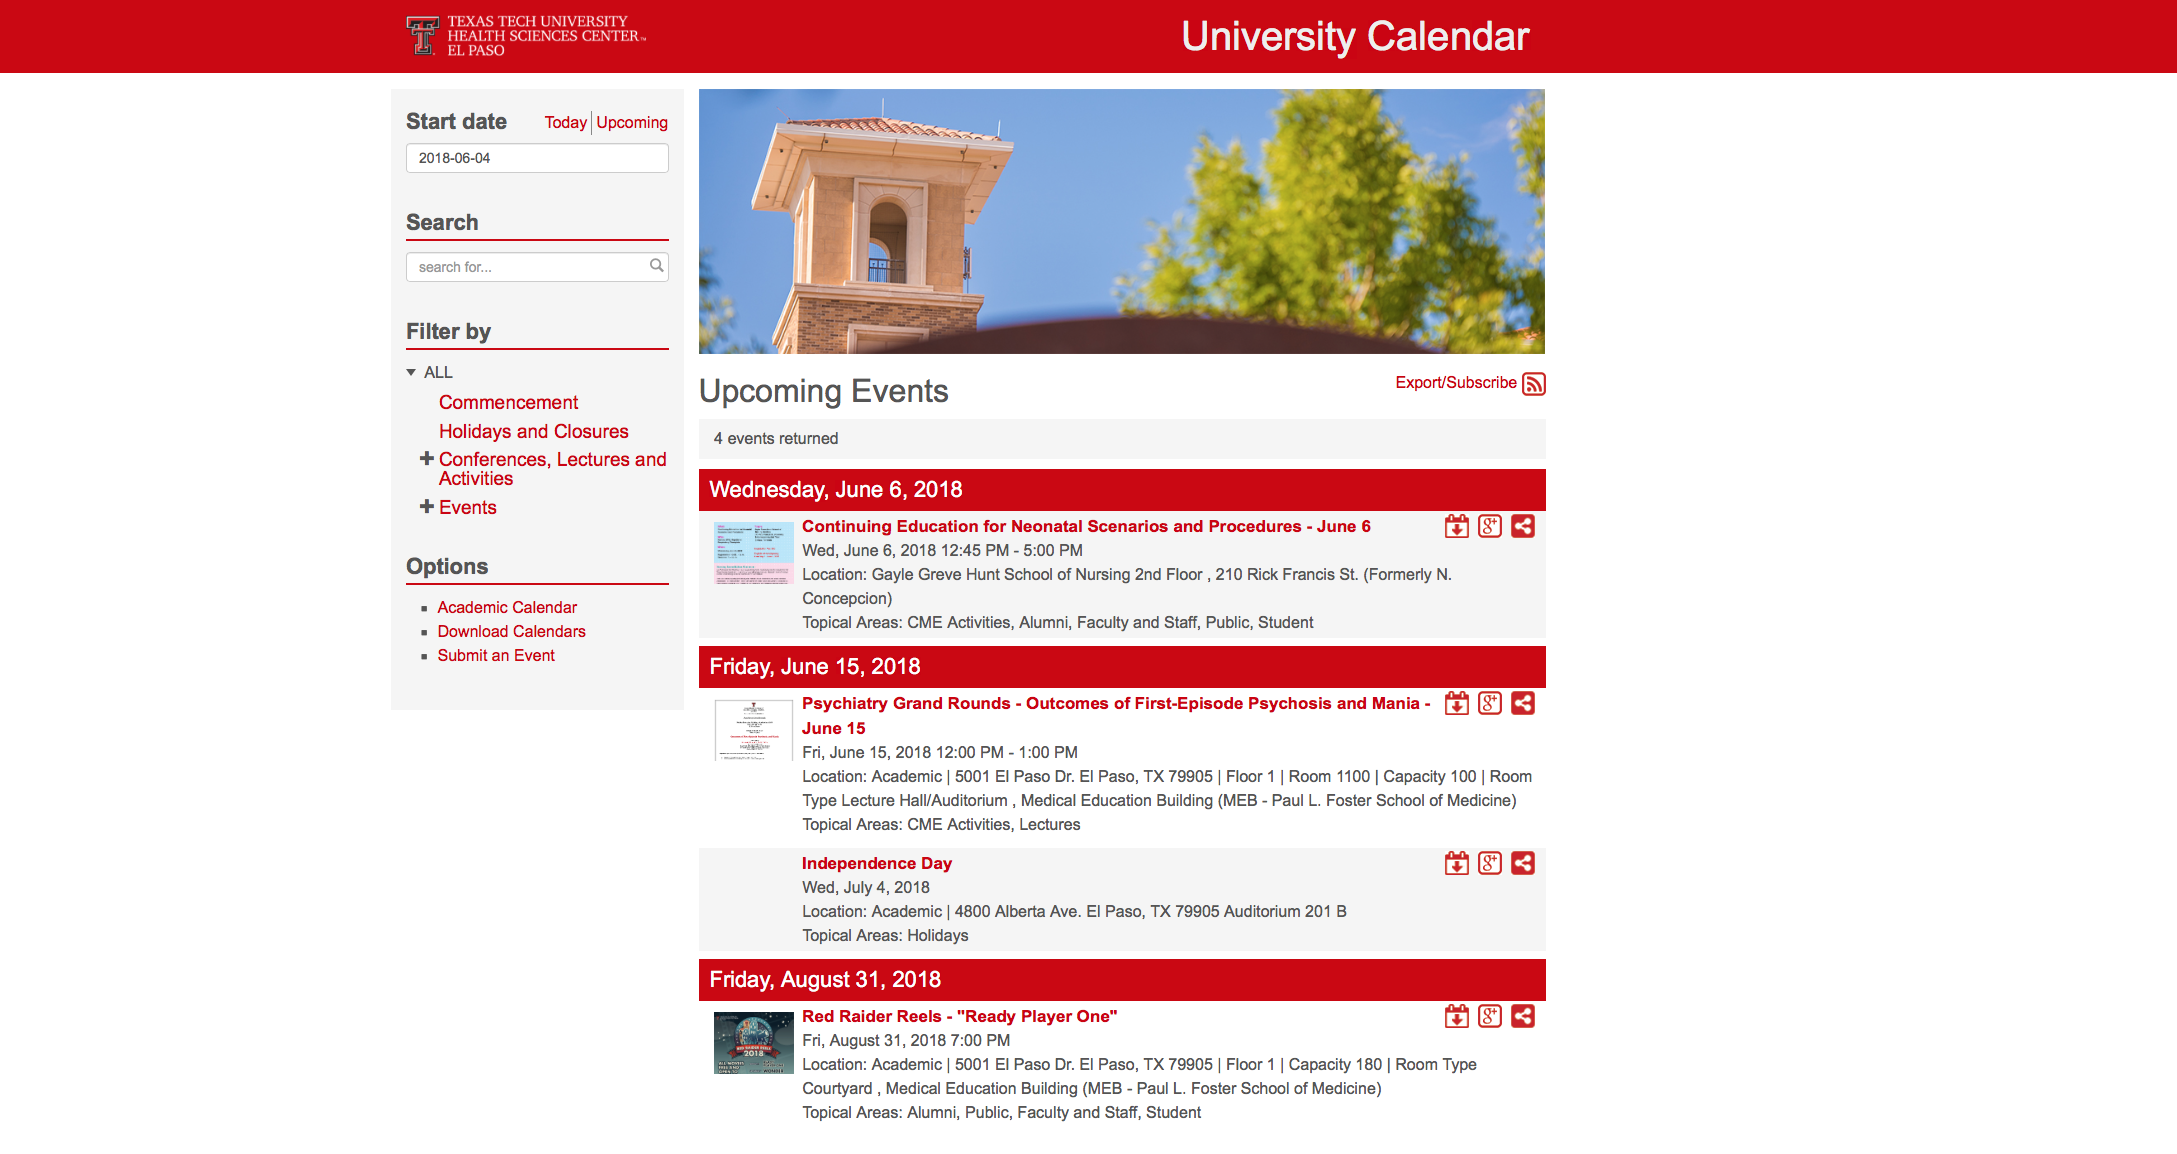 New University Calendar Now Available